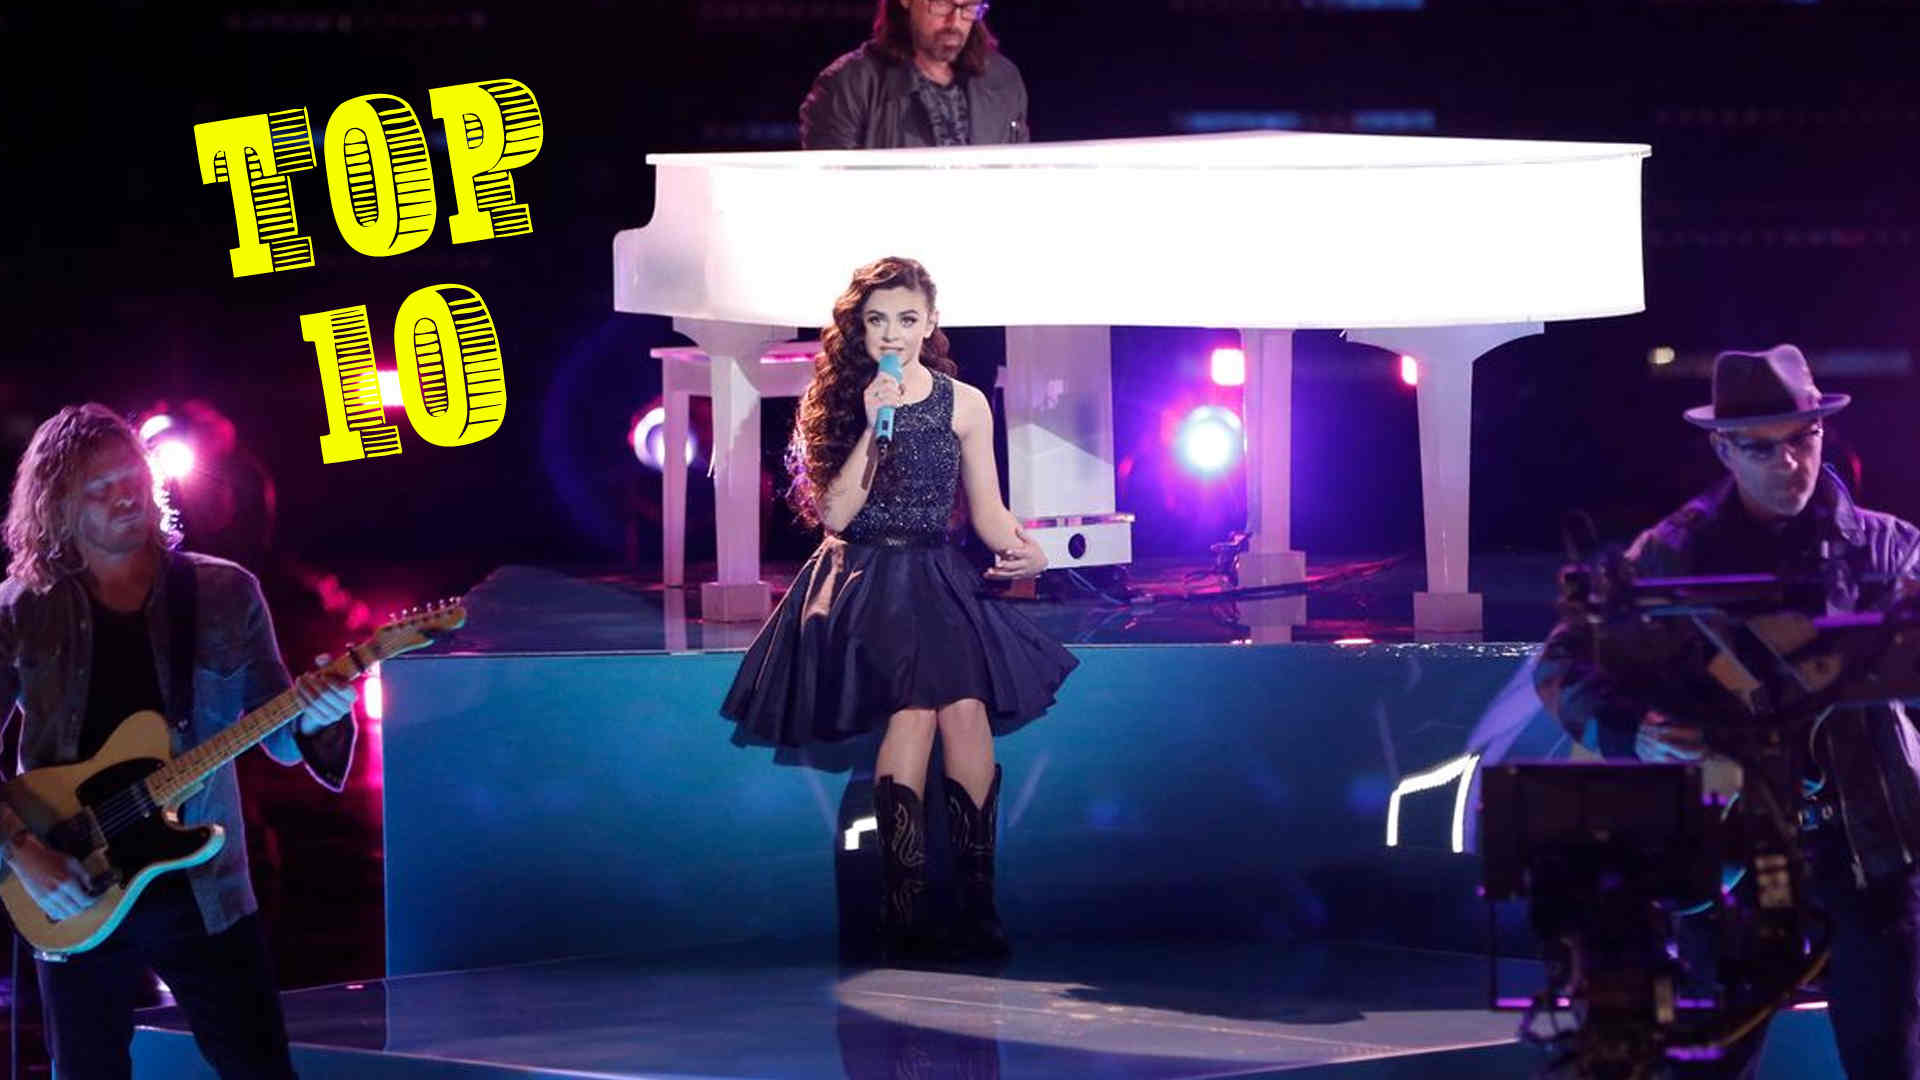 Vote Chevel Shepherd the Voice 2018 Live Top 10 on 3 December 2018 with The Voice 2018 Voting App Online